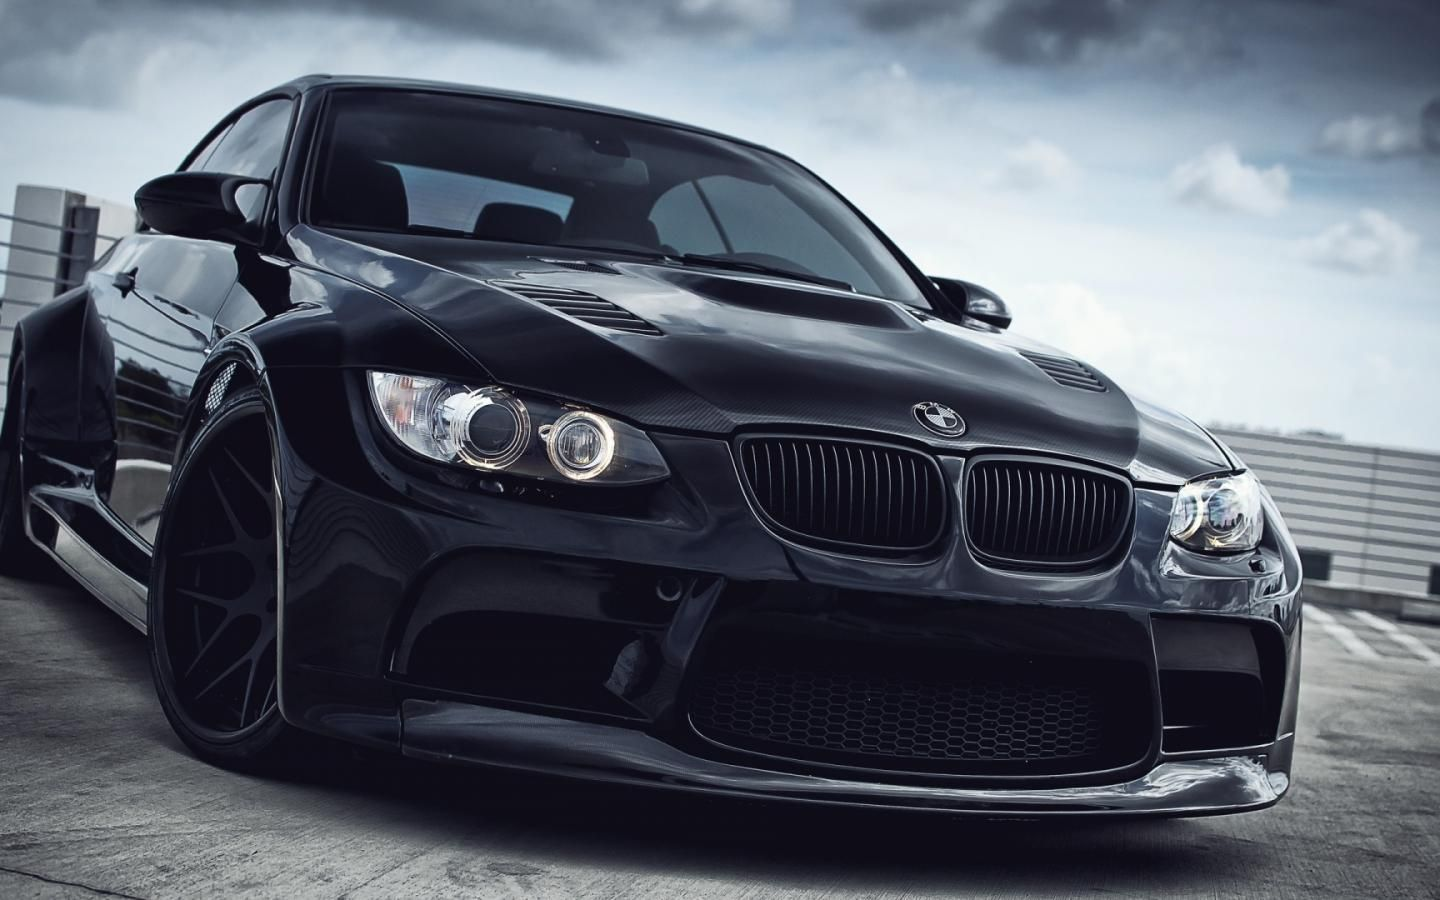 Bmw Wallpaper Widescreen Super Car Racing Bmw Black Bmw Wallpapers